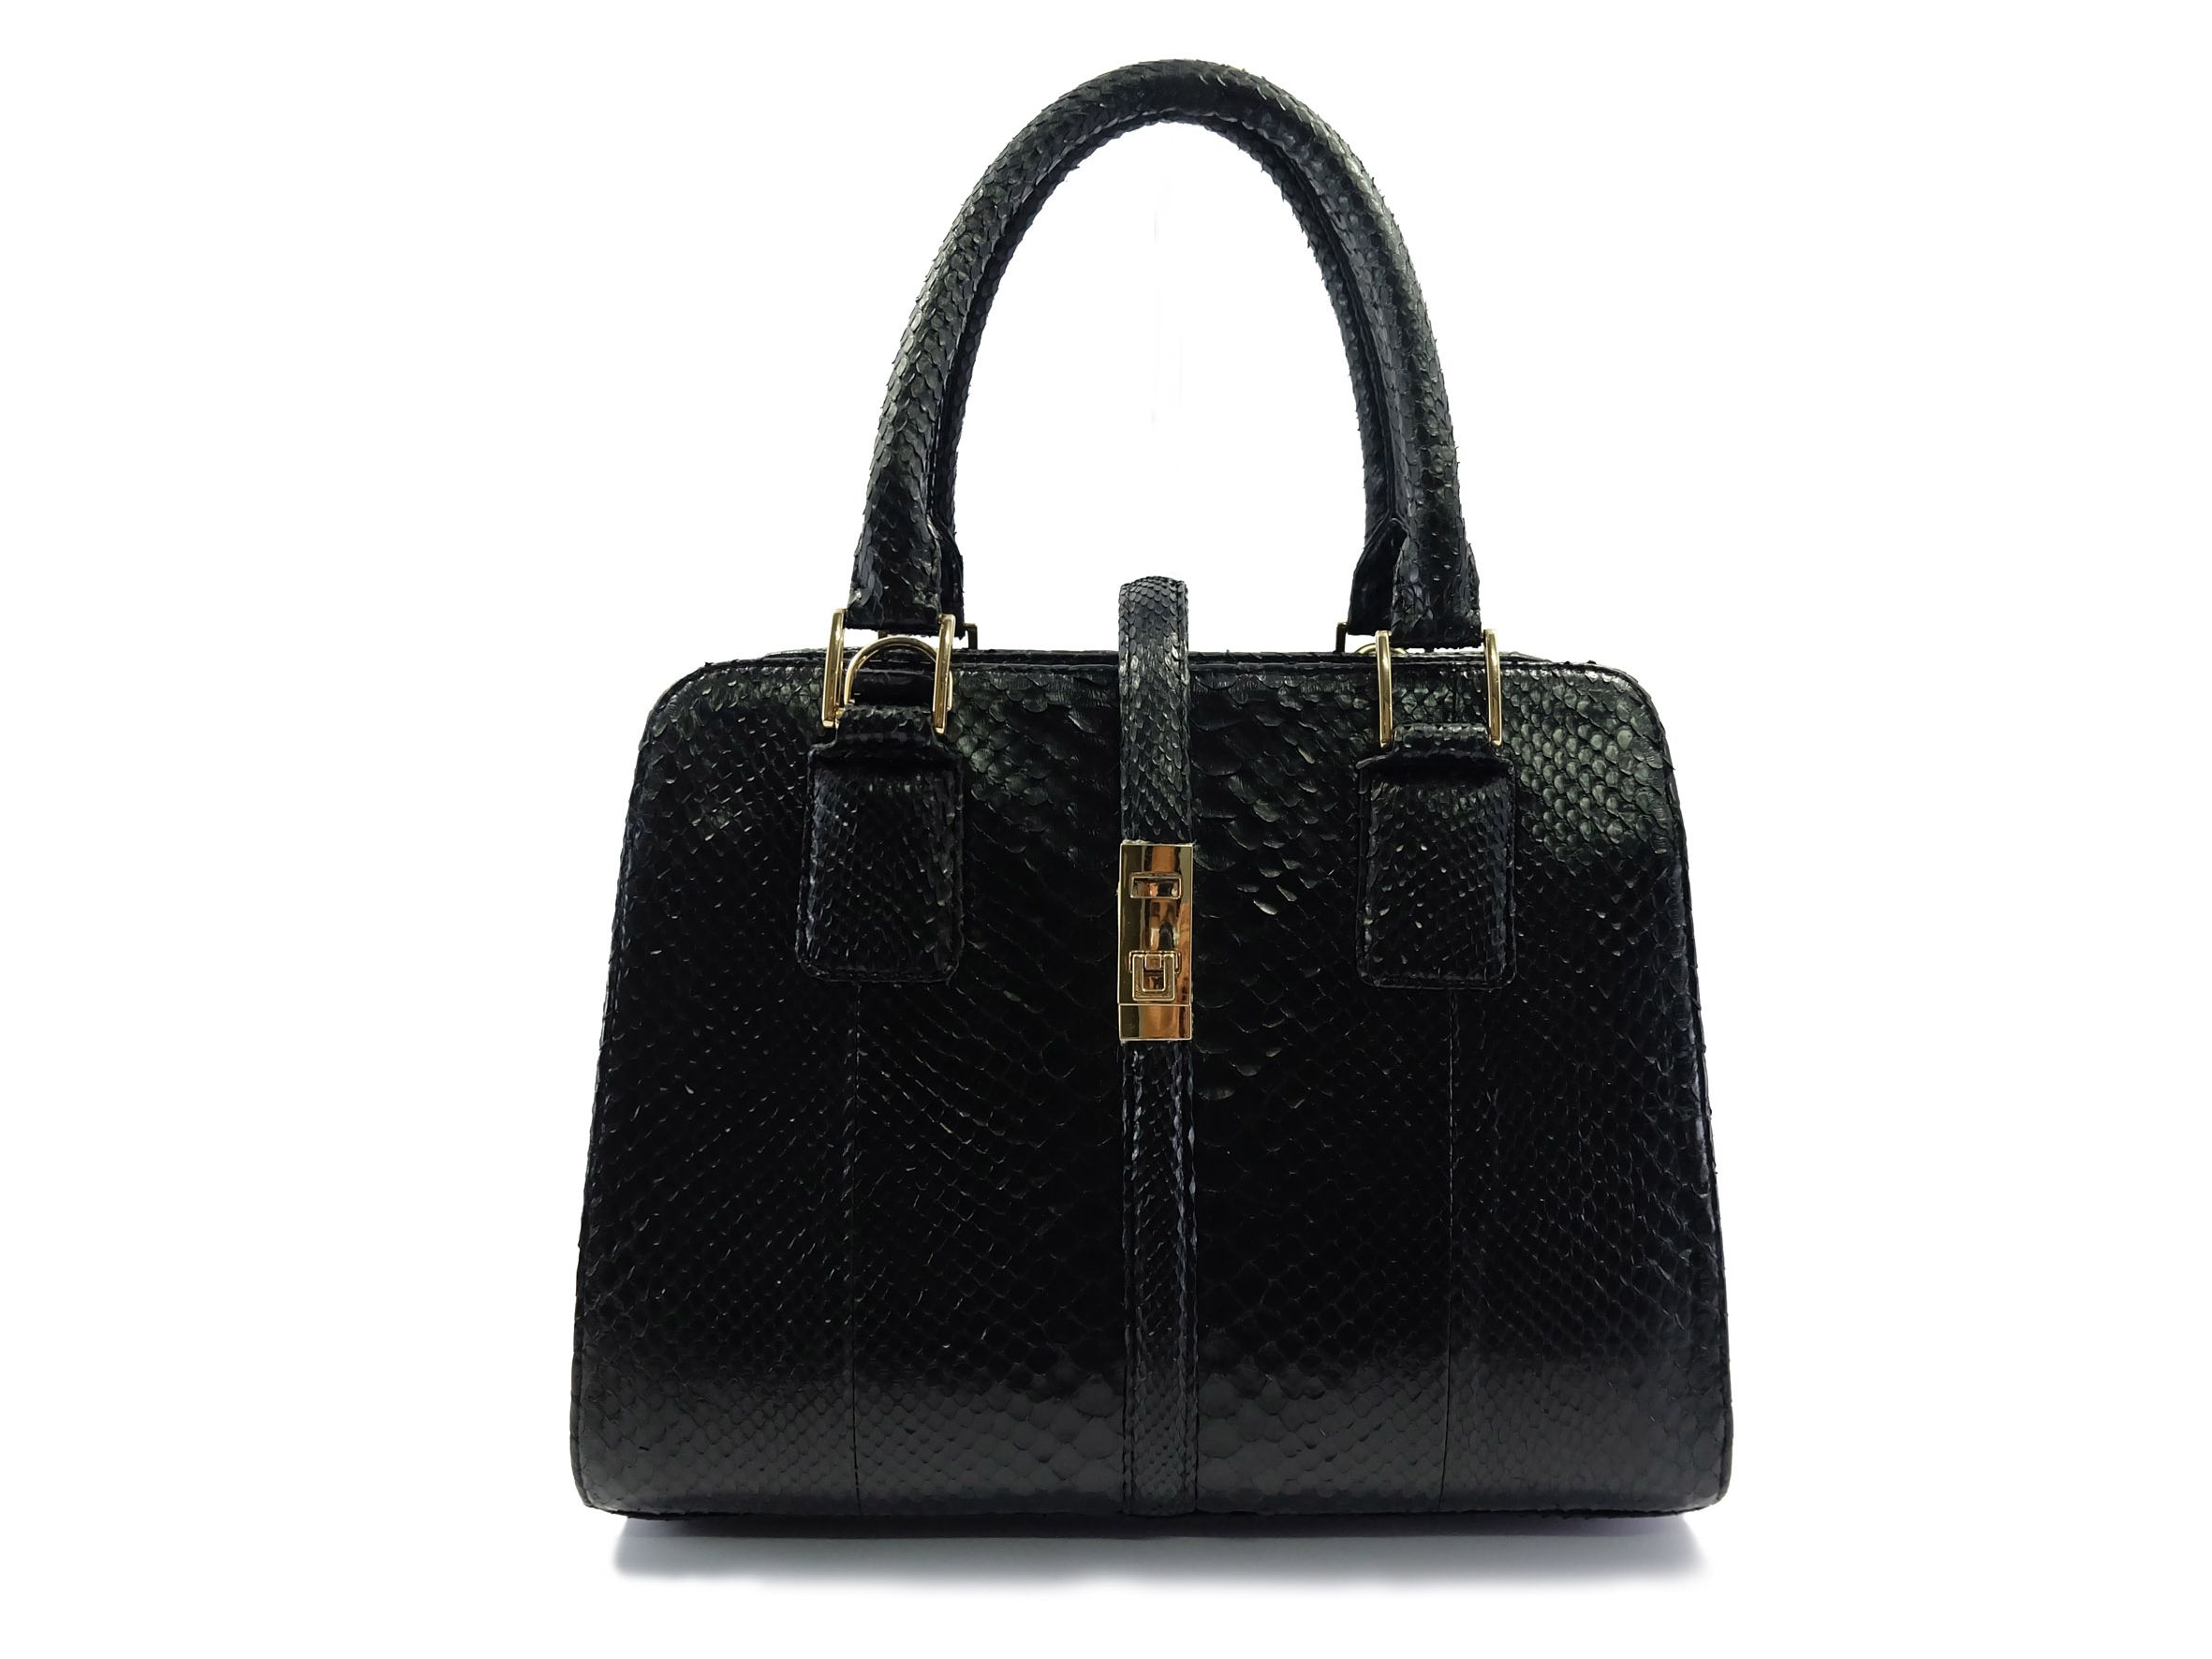 Eleanor Bag -SOLD-